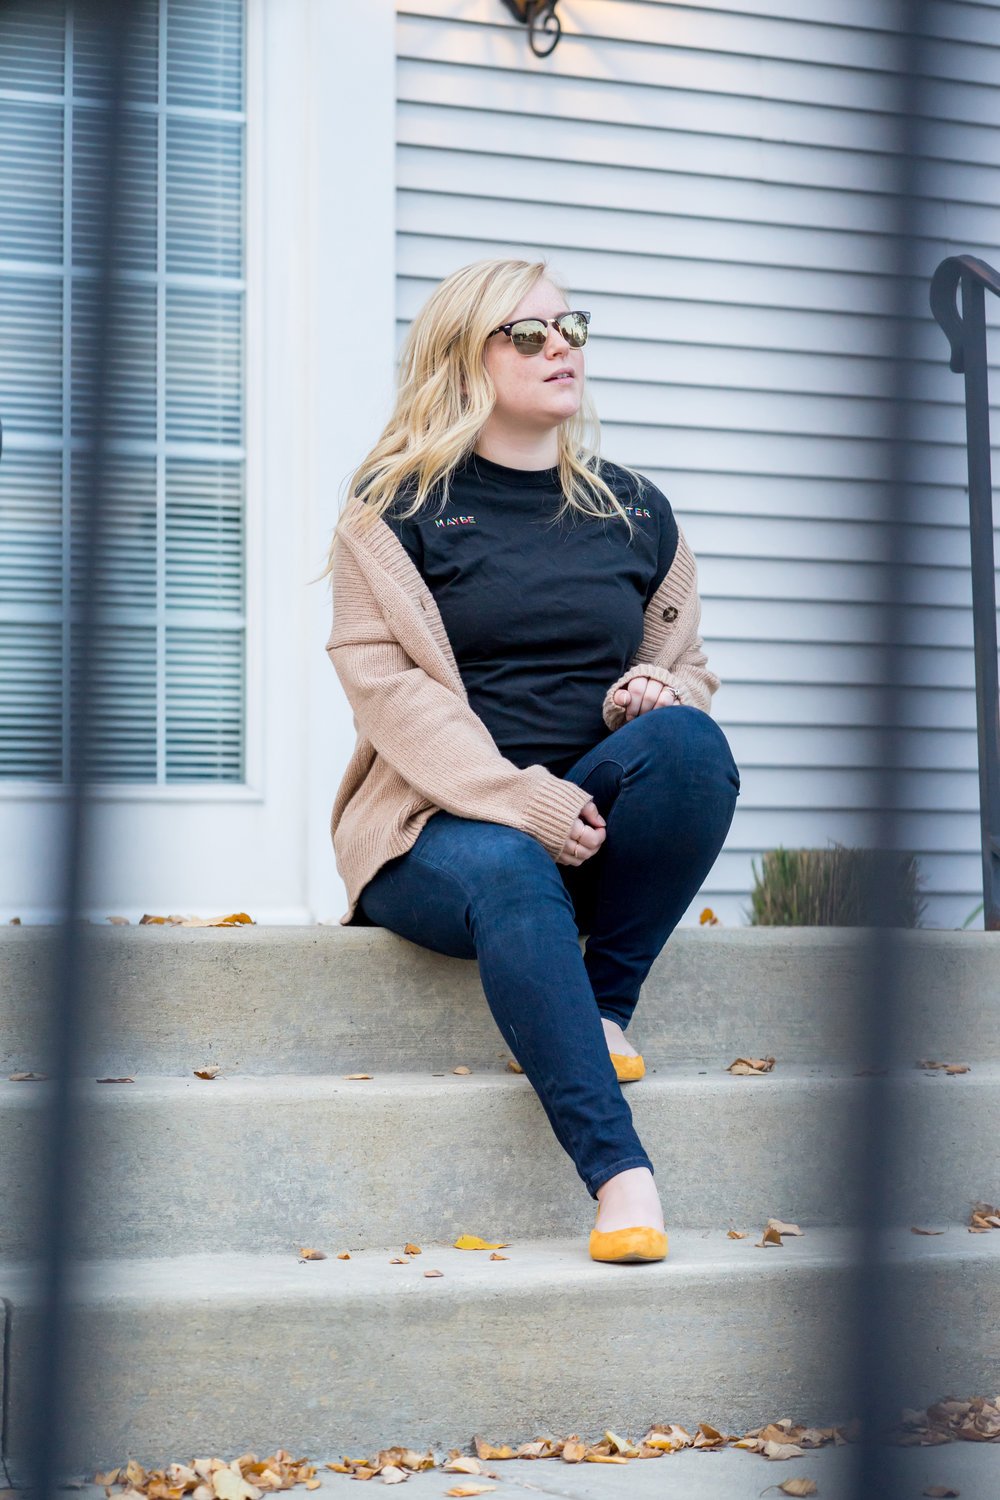 Maggie a la Mode - Where to Find the Cutest Graphic Tees Urban Outfitters Rainbow Embroidered Phrase Tee Maybe Later, Lou & Grey Abbreviated Boyfriend Cardigan, Everlane Editor Slingback Flats, Paige Verdugo Ankle Skinny Jeans